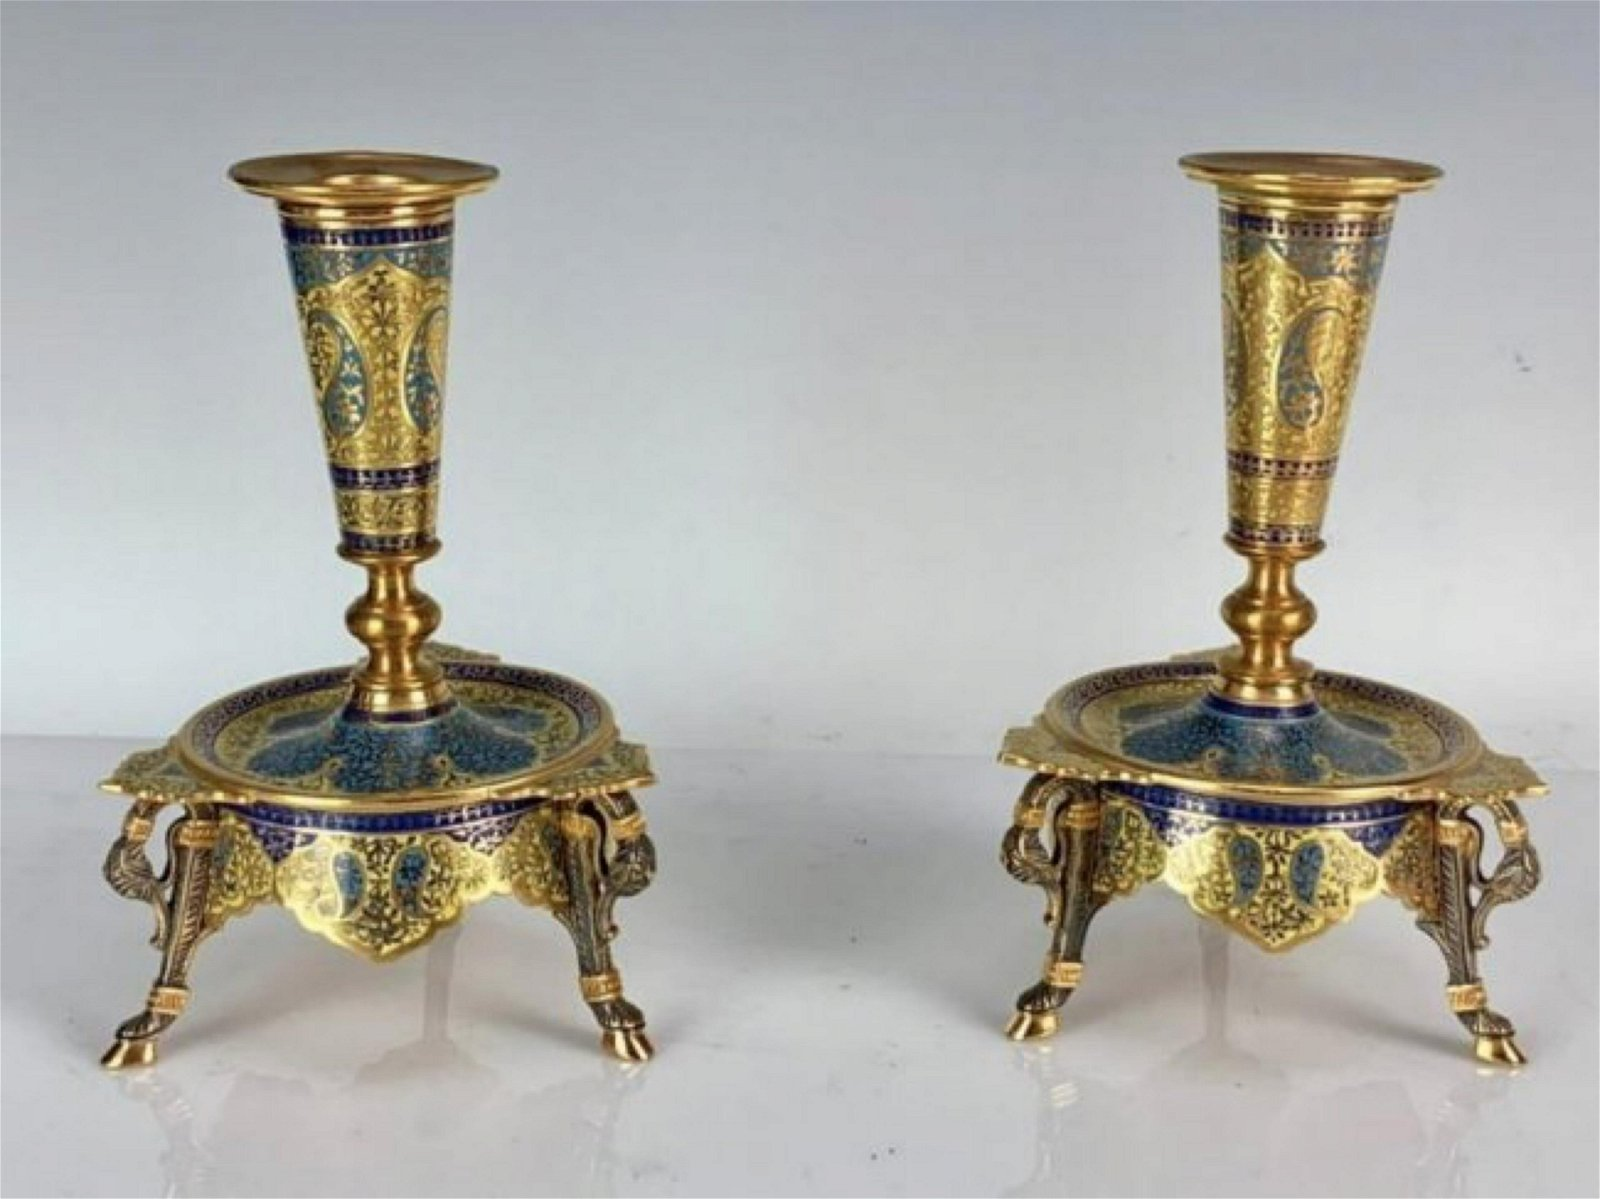 A PAIR OF FRENCH CHAMPLEVE ENAMEL CANDEL HOLDERS